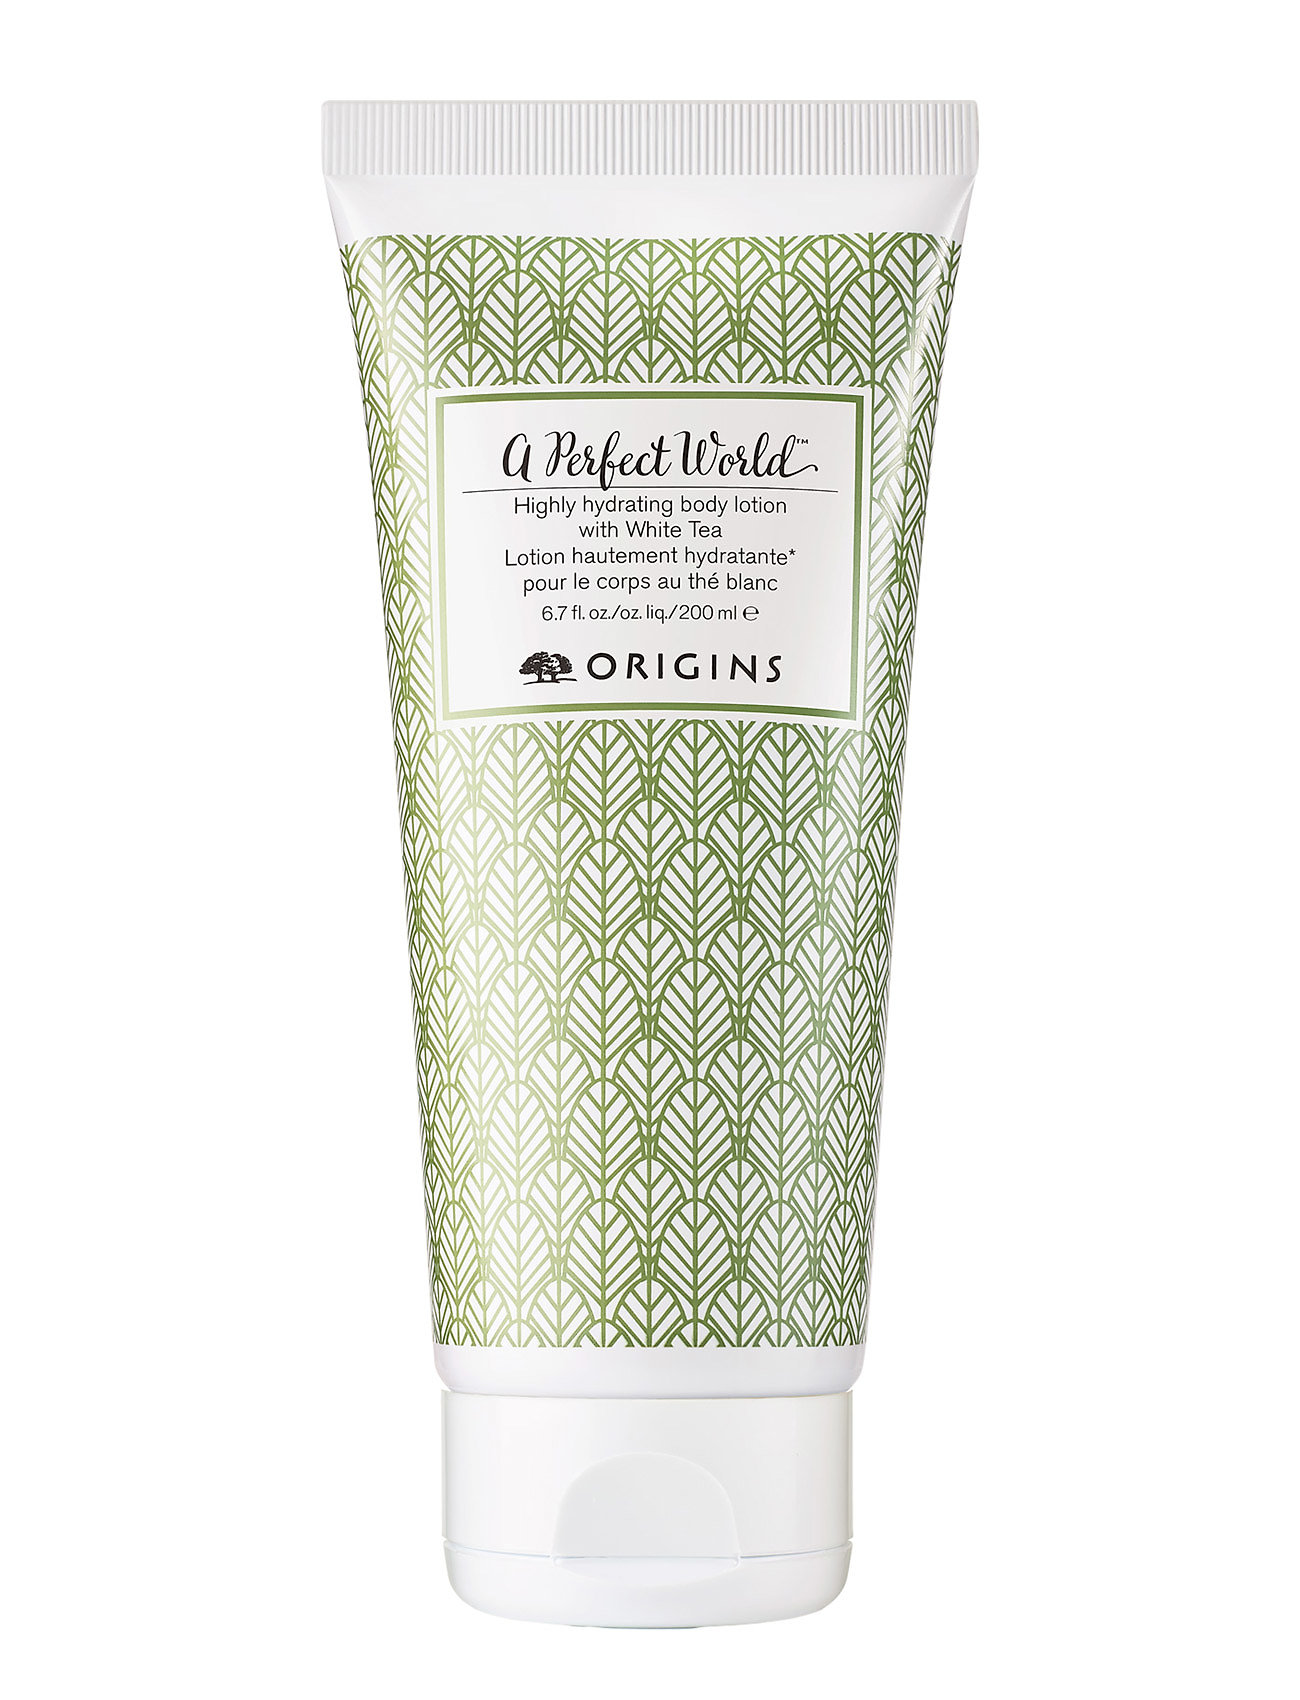 origins A perfect world™ highly hydrating body lotion with white t på boozt.com dk